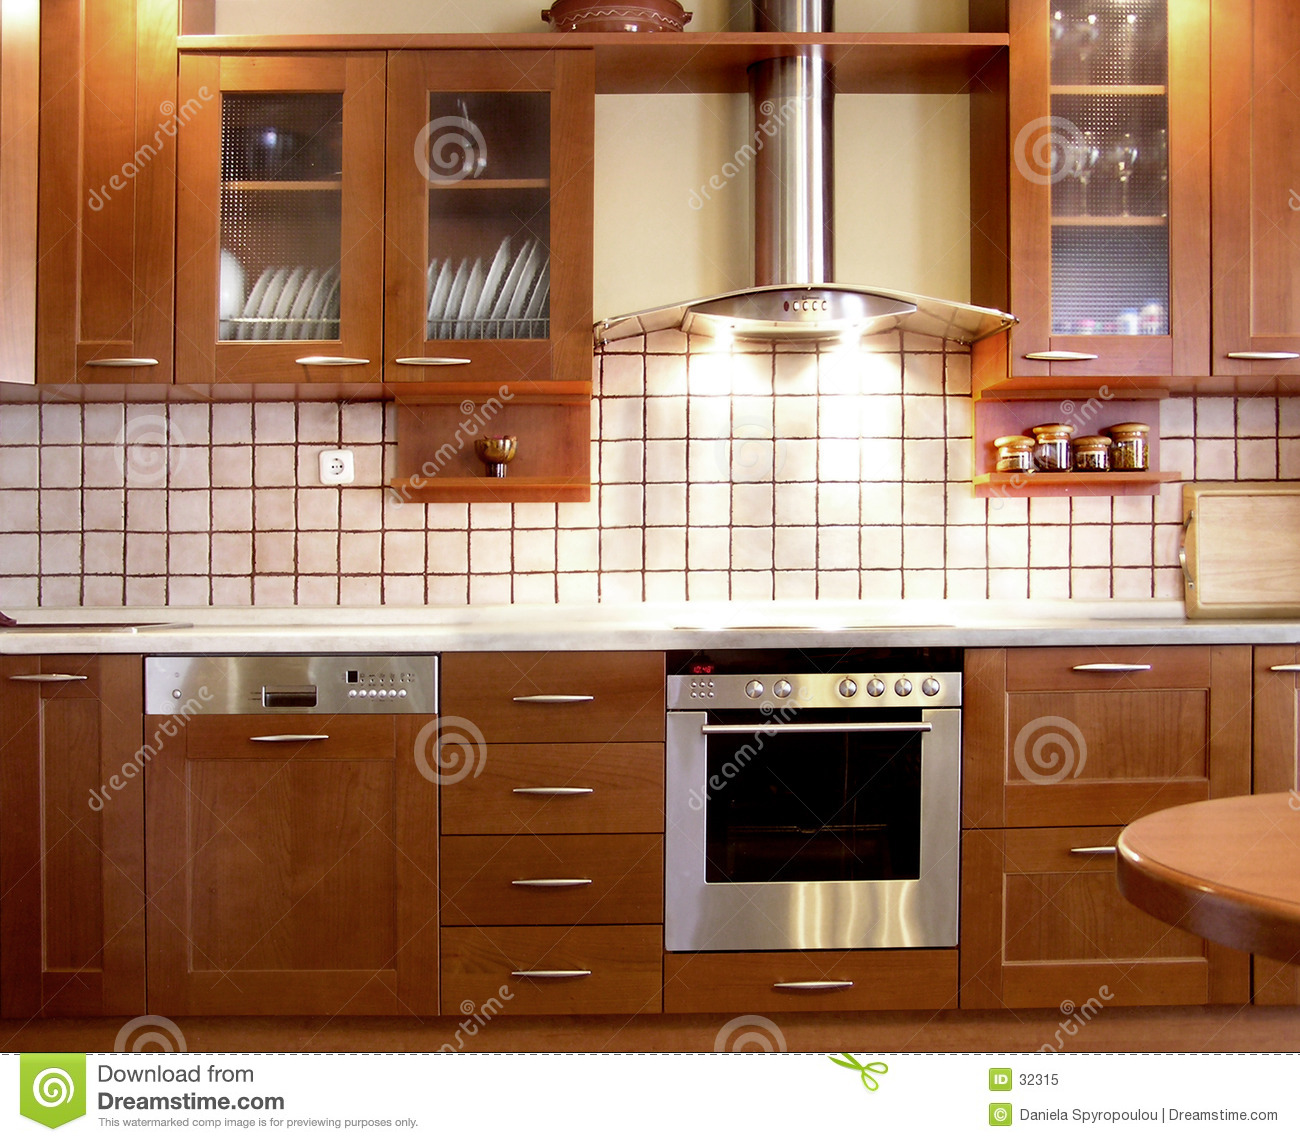 Kitchen Design Images Free: Cherry Kitchen Design Stock Image. Image Of Kitchens